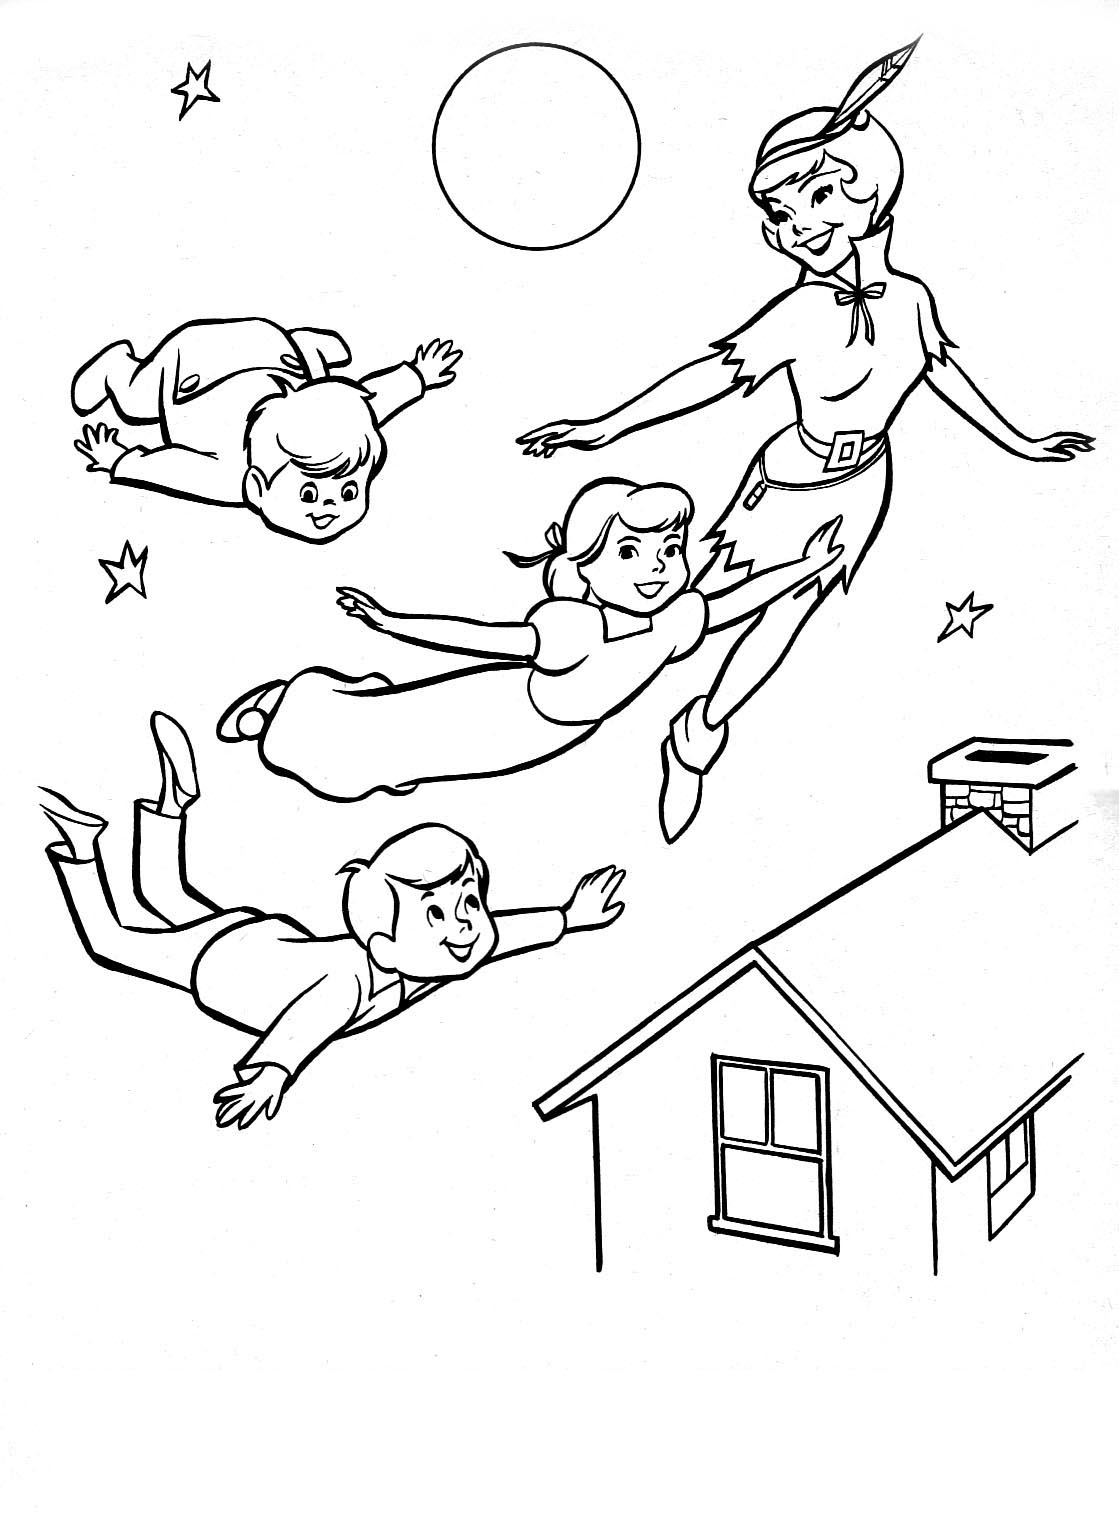 Peter pan 5 coloriage peter pan coloriages pour enfants - Coloriages peter pan ...